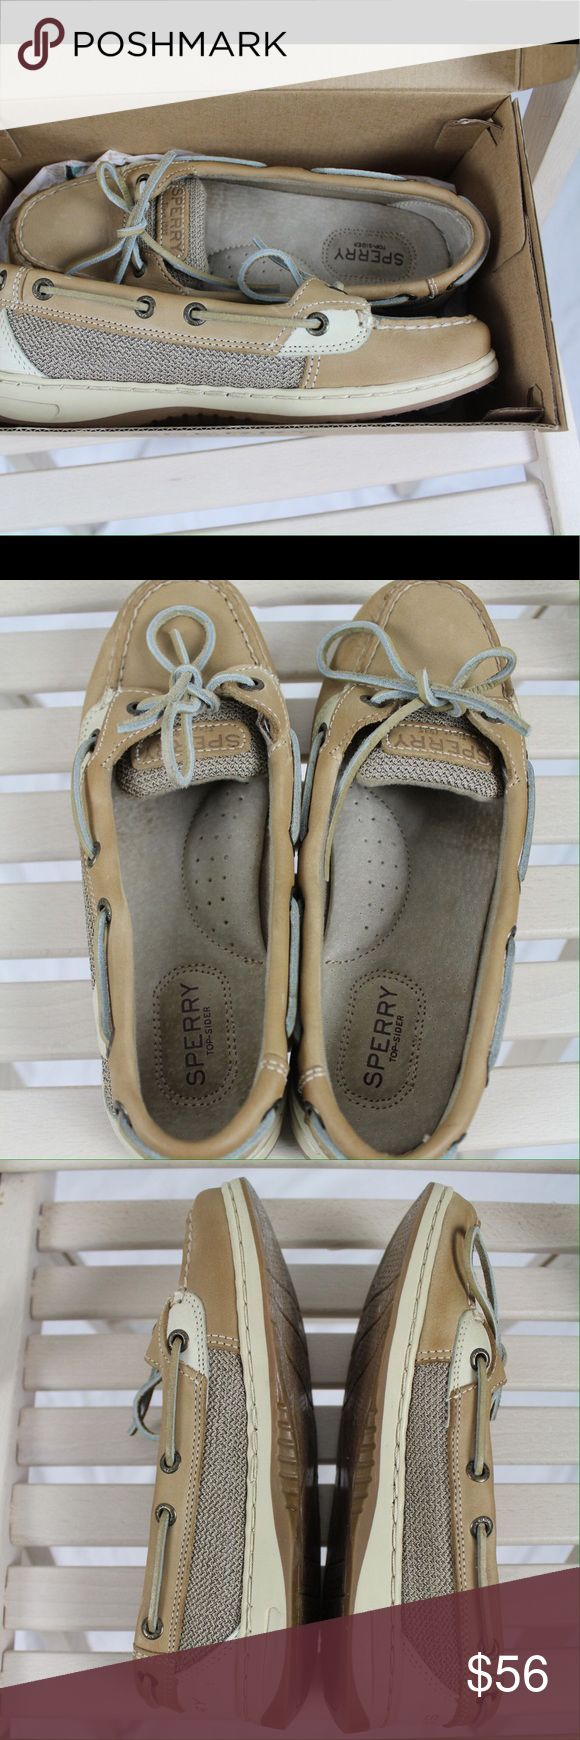 Sperry Angelfish Size 7 M In Box, Linen/Oat color This is a pair of Sperry Angelfish topsiders in Linen/Oat, women's size 7 Medium. Current model; purchased in May 2017. Worn by daughter one day. Unable to return after wear- she needed a 1/2 size larger. Details in Comments due to running out of space for all the text here in the Description section.  Not a lot of wiggle room in price; these were $79 at DSW in May, 2017 and were worn ONE DAY. So no, they are not NEW in box but they are…